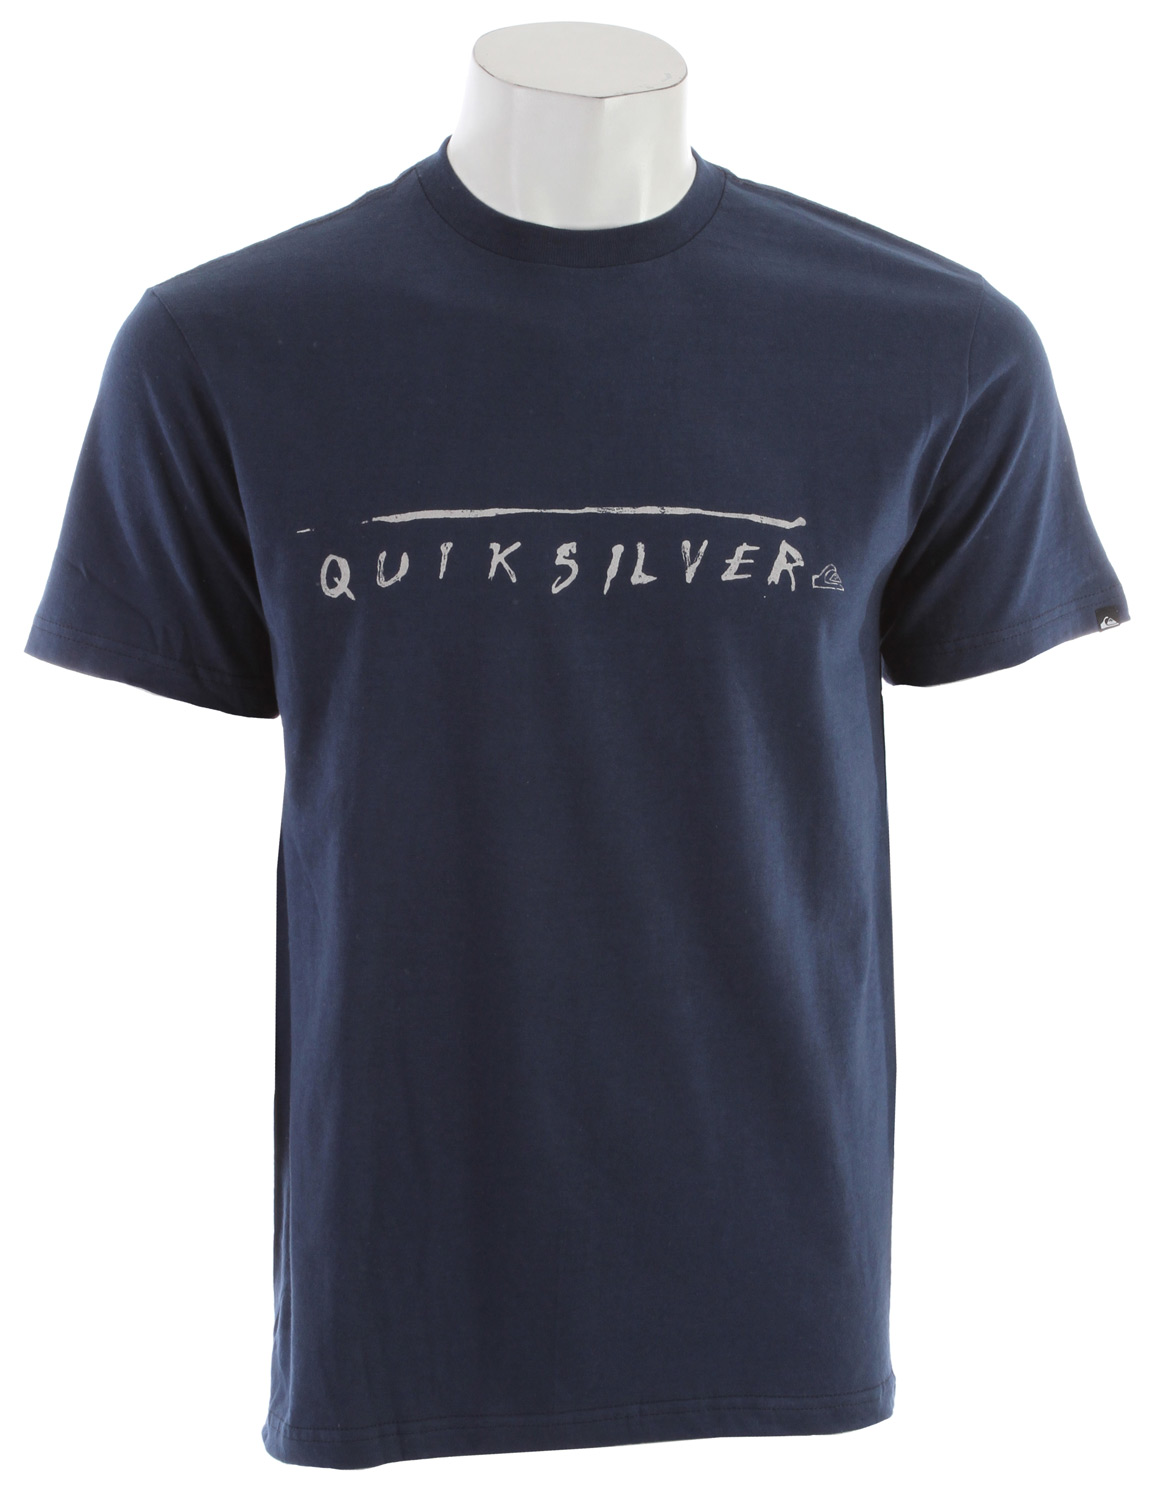 Surf A lot goes on in the backseat. Look good doing whatever in a Backseat classic tee.Key Features of the Quiksilver Backseat T-Shirt: 22 singles ringspun jersey, regular fit SOLIDS: 100% cotton HEATHERS: 50% cotton / 50% polyester Machine wash, imported. - $13.95